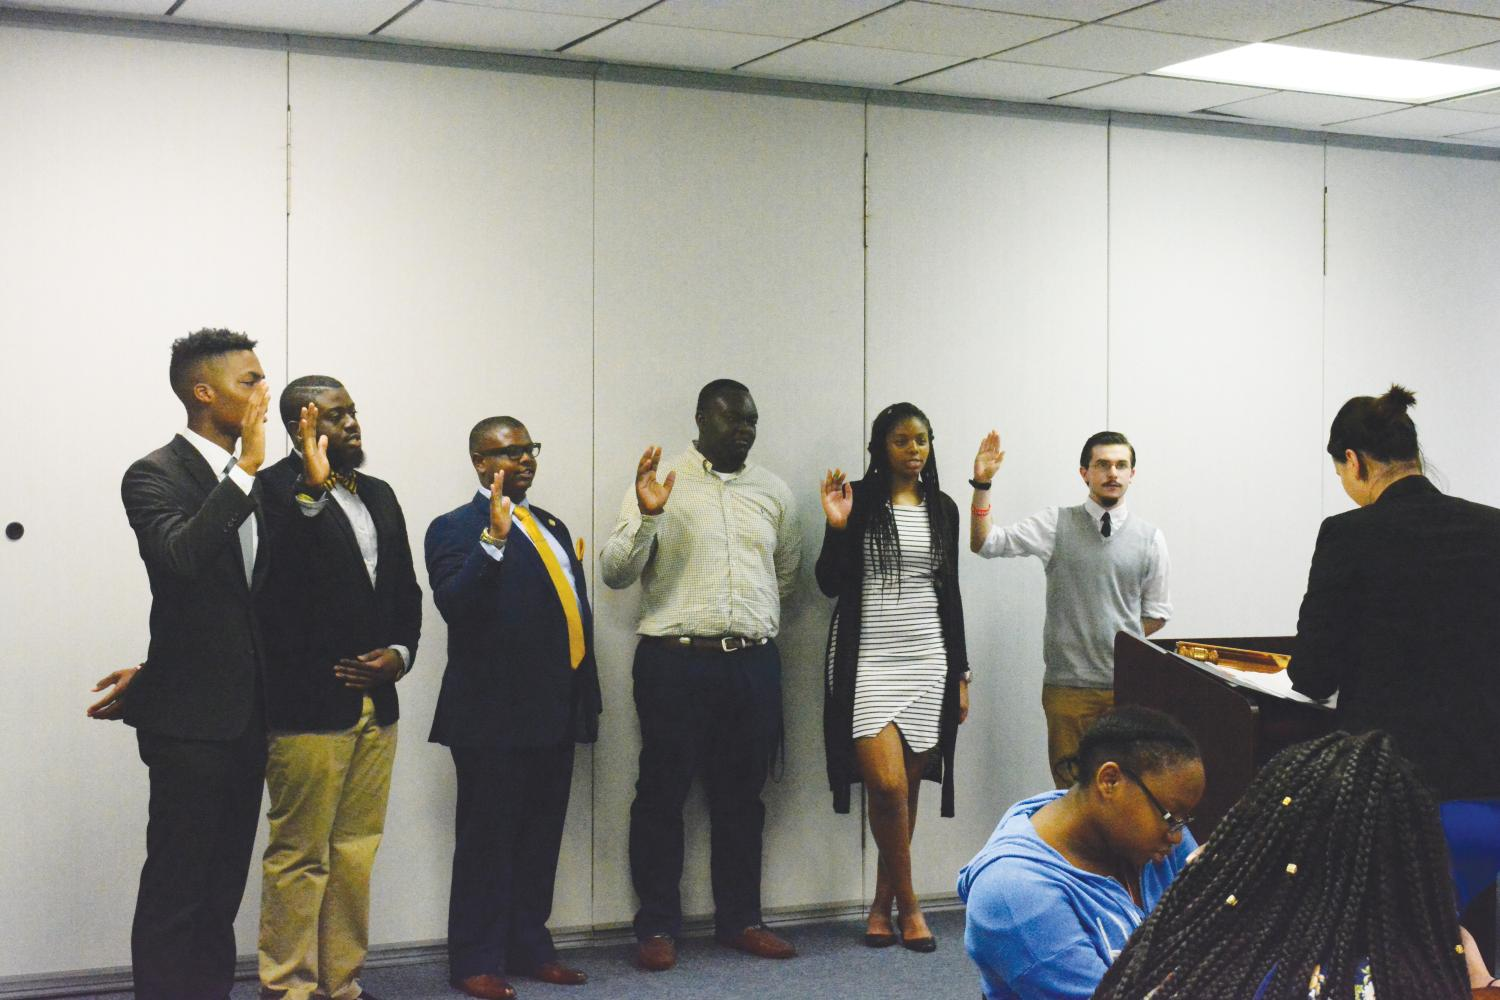 Each year, SGA holds a vote for senate seats. The newly-elected senators swear in for their positions during the Oct. 12 SGA meeting.